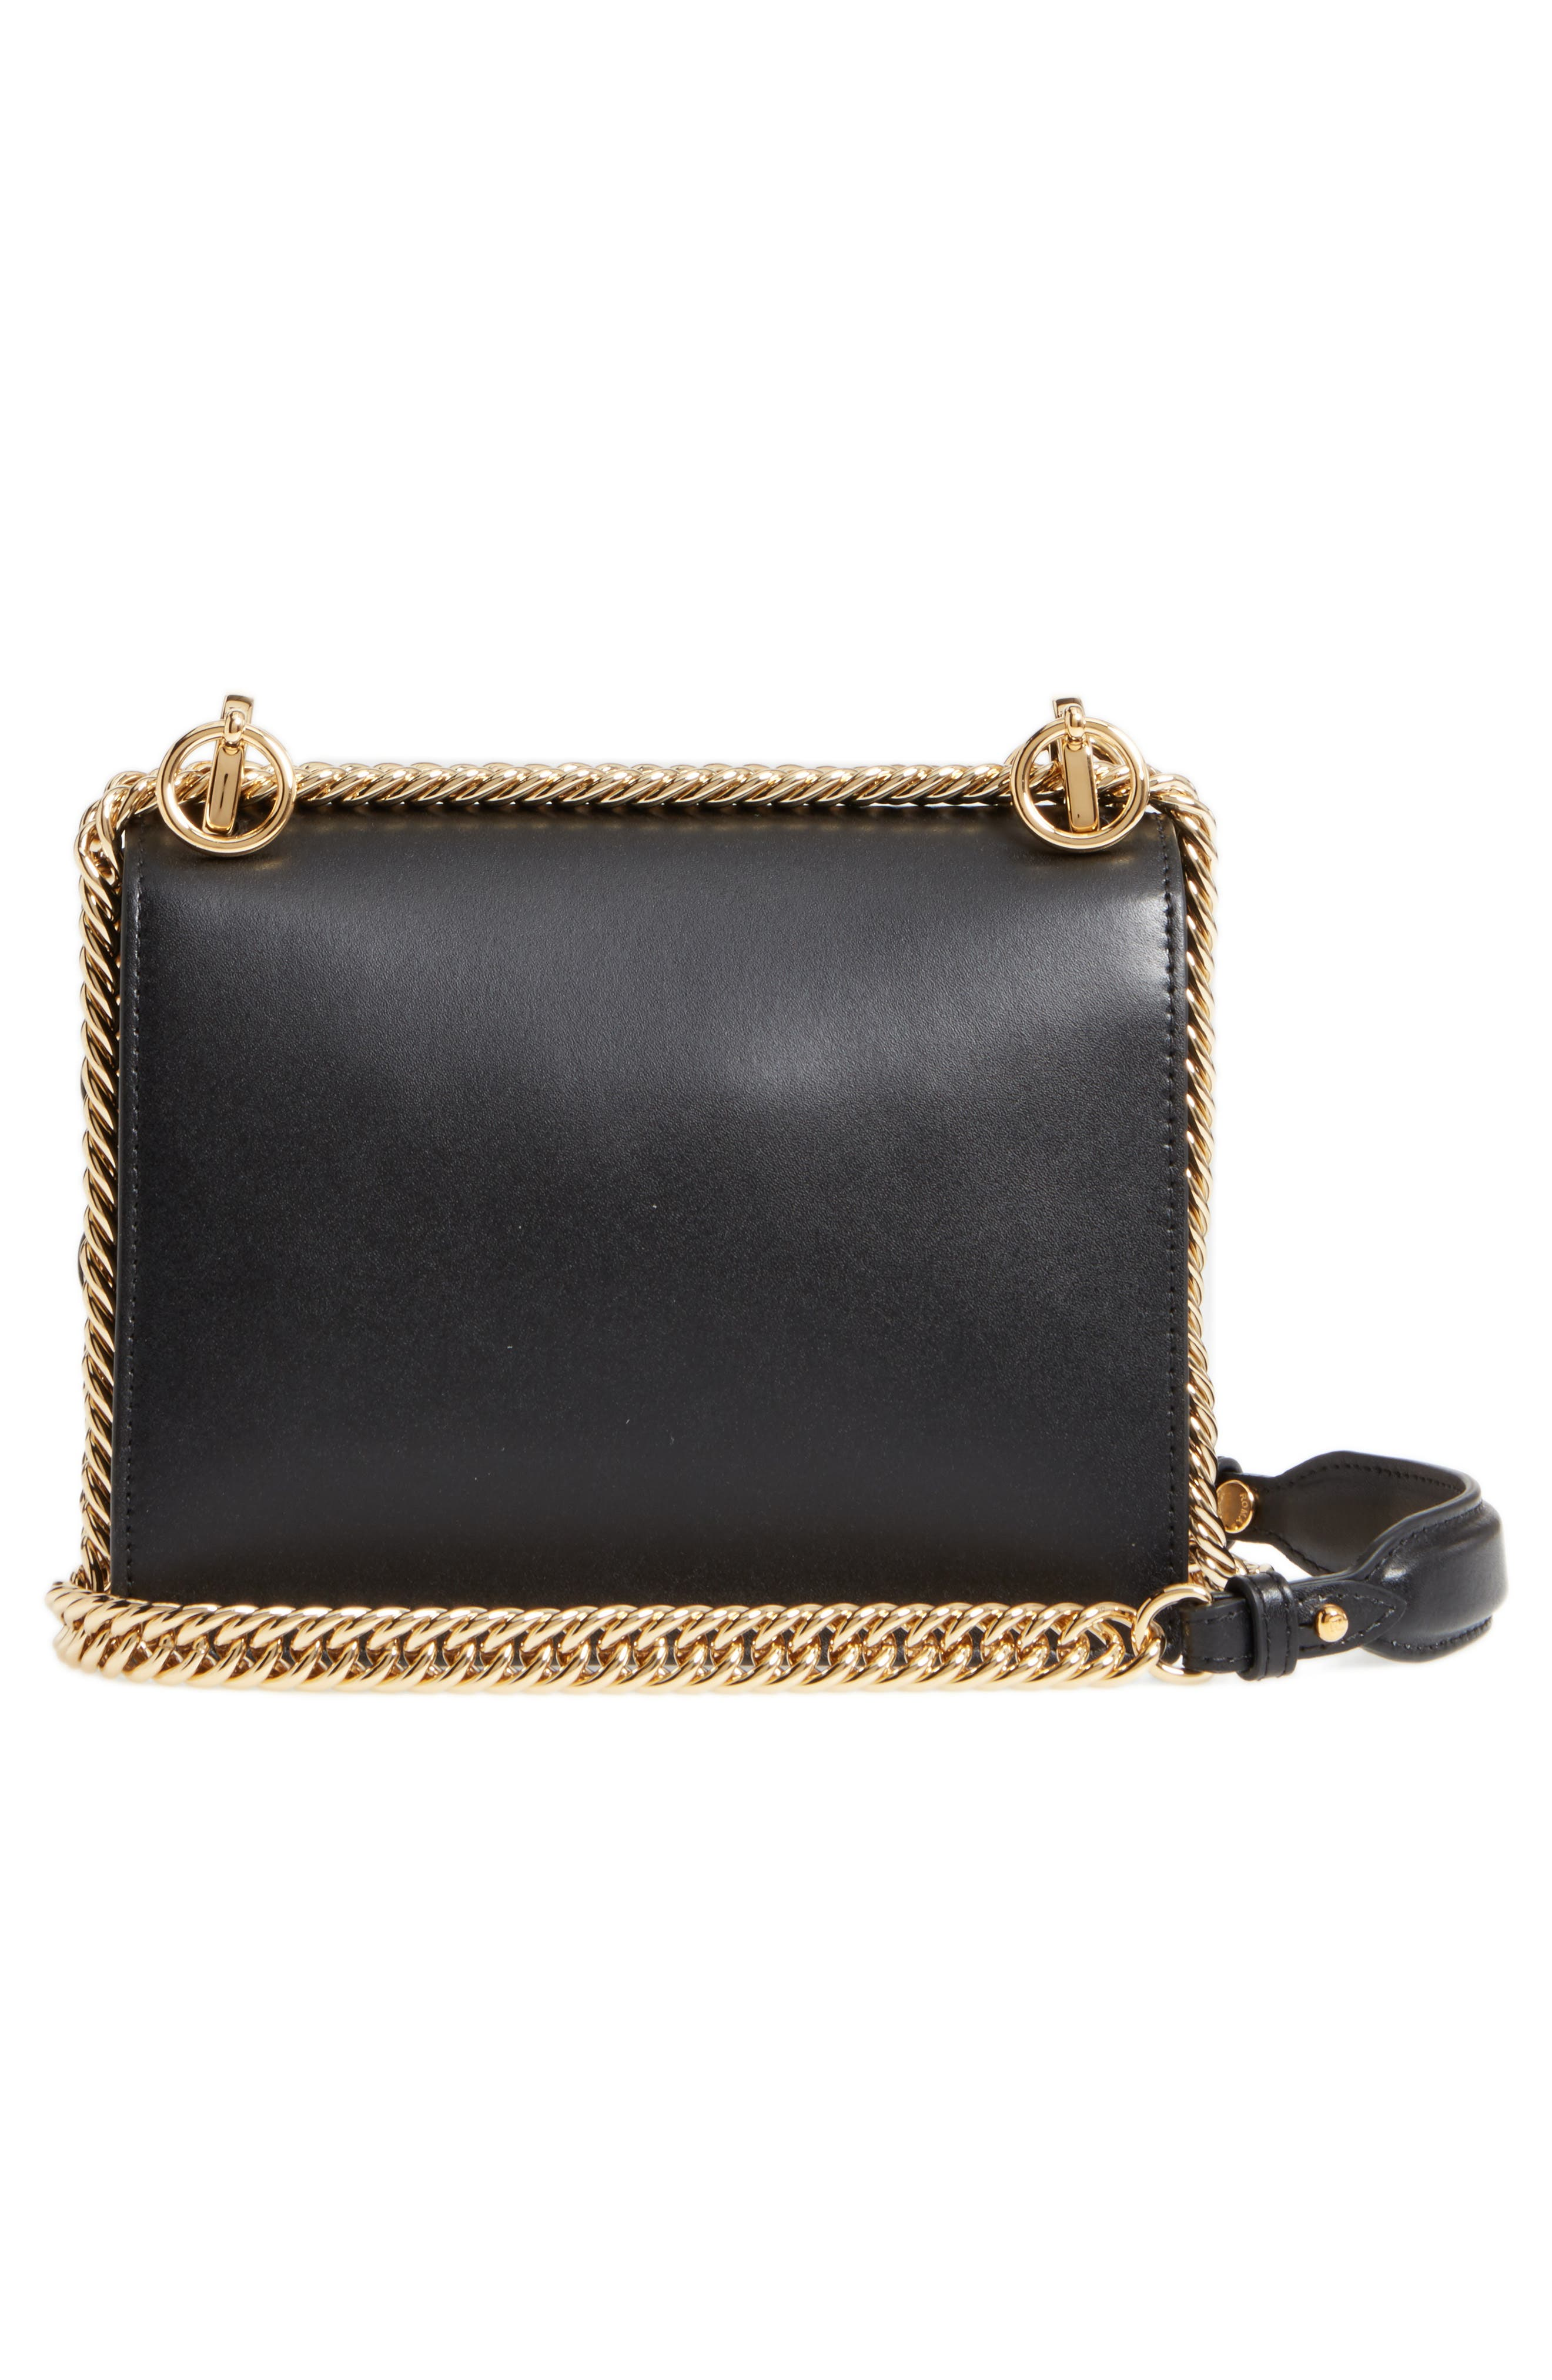 Small Kan I Scallop Leather Shoulder Bag,                             Alternate thumbnail 3, color,                             NERO/ ORO SOFT